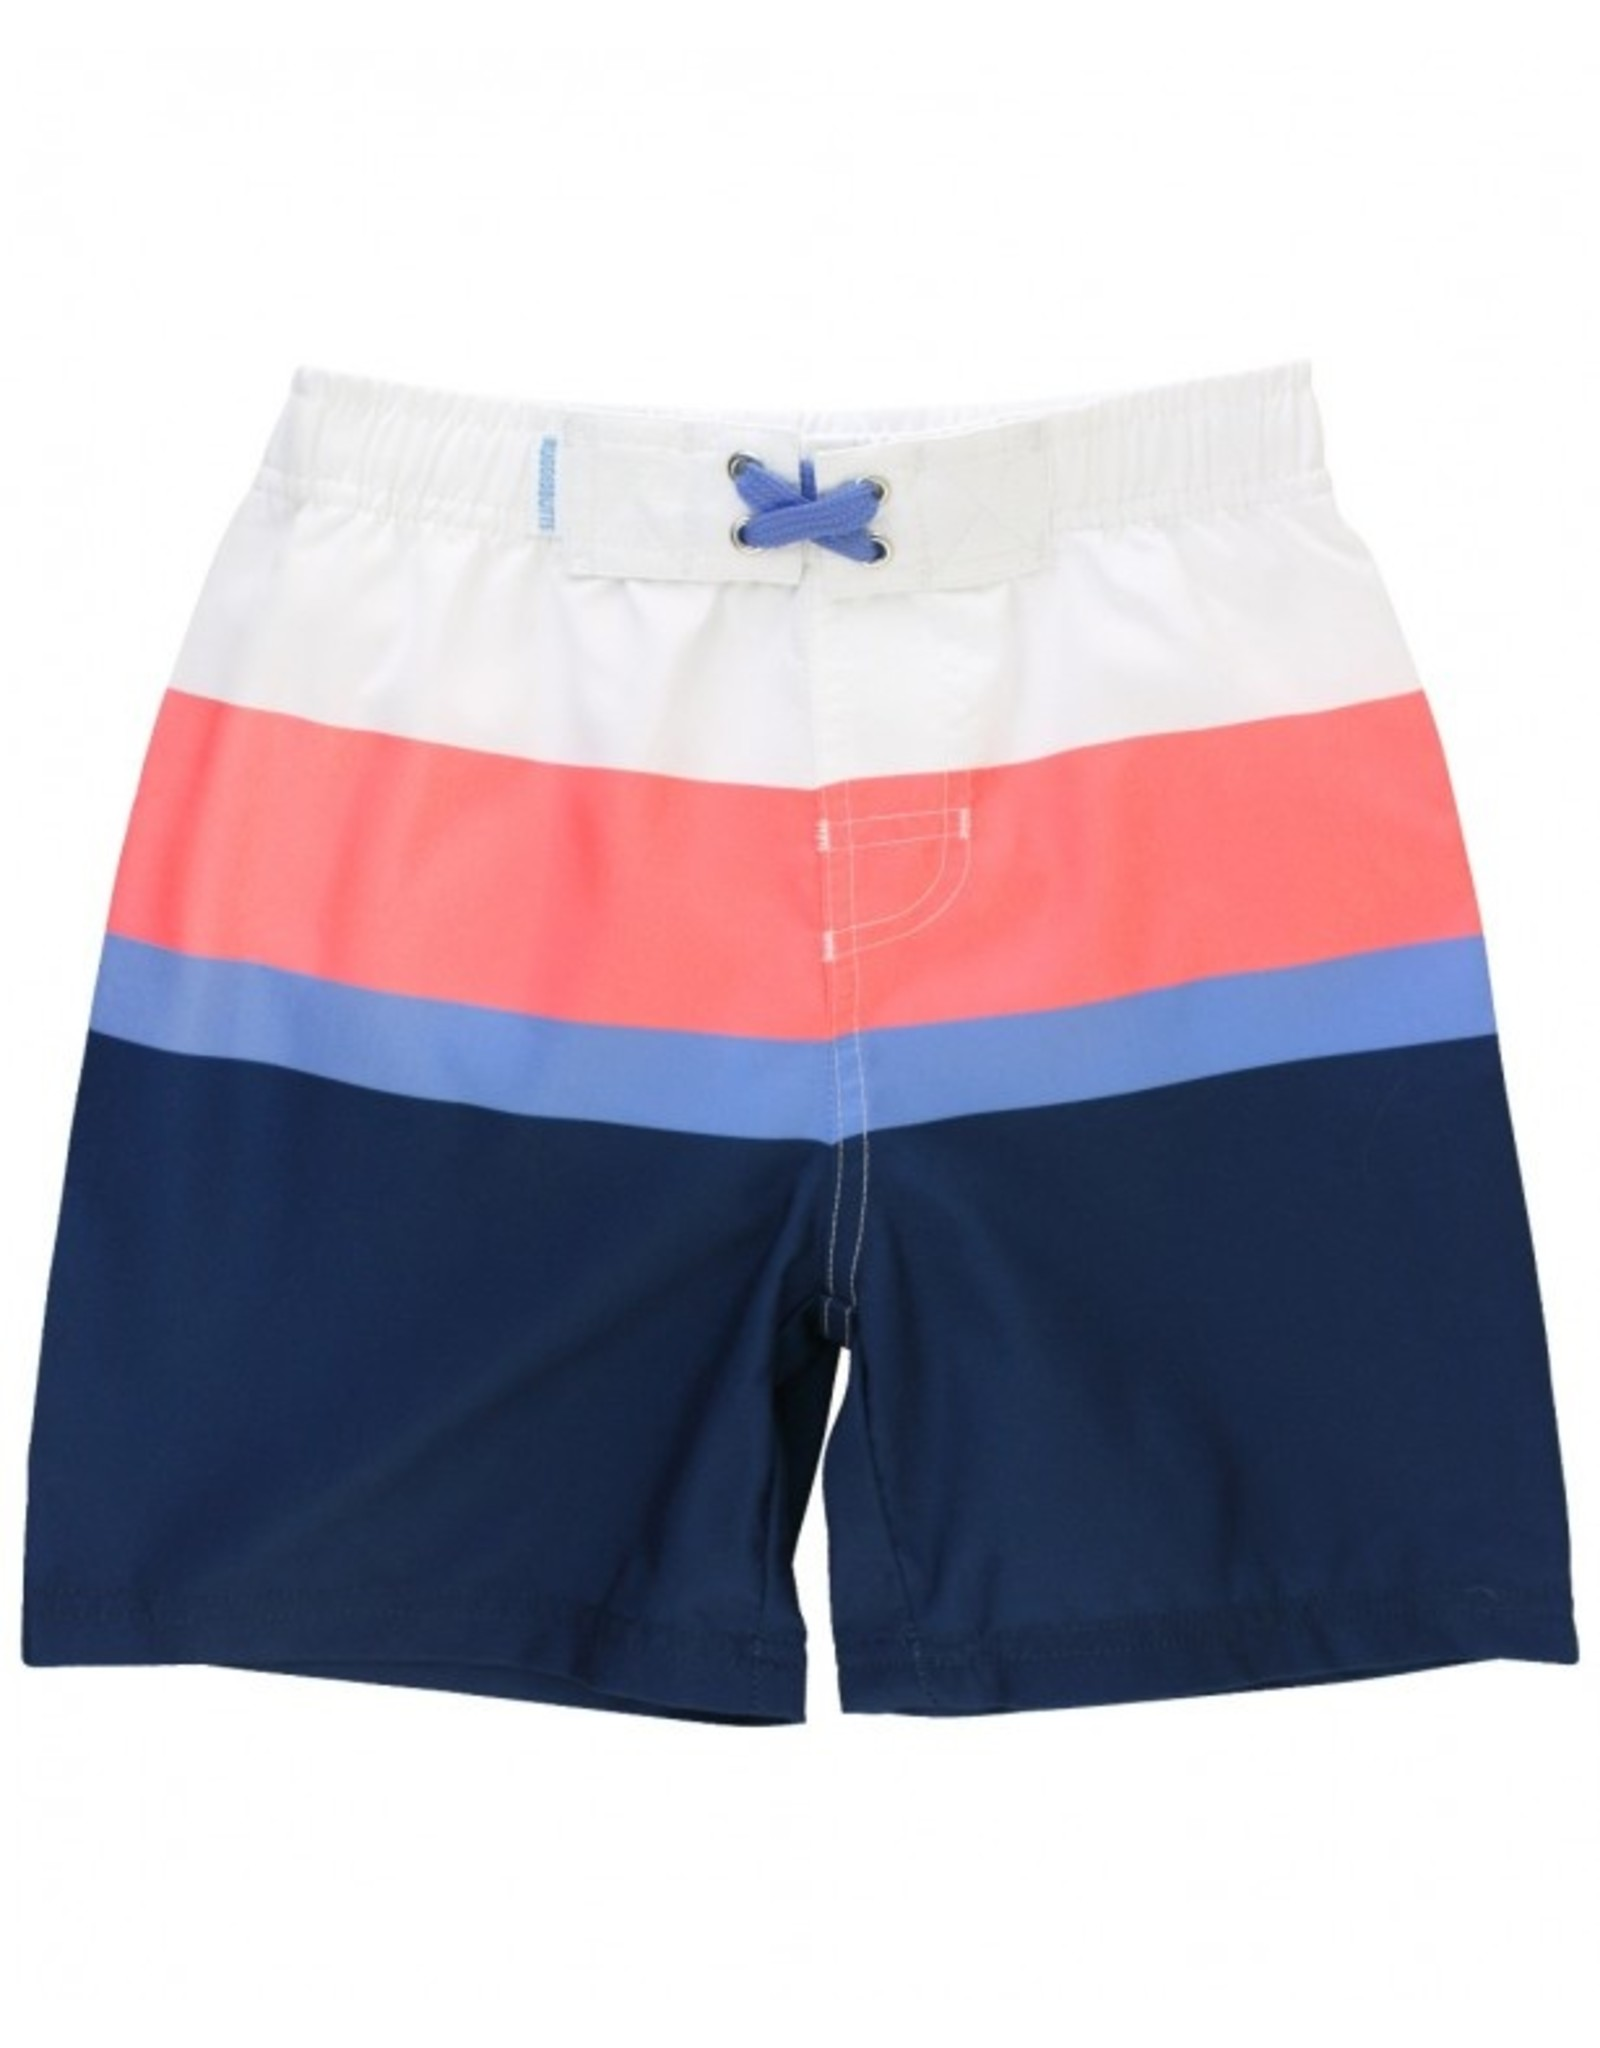 RUFFLE BUTTS / RUGGED BUTTS RUGGED BUTTS SWIM TRUNKS